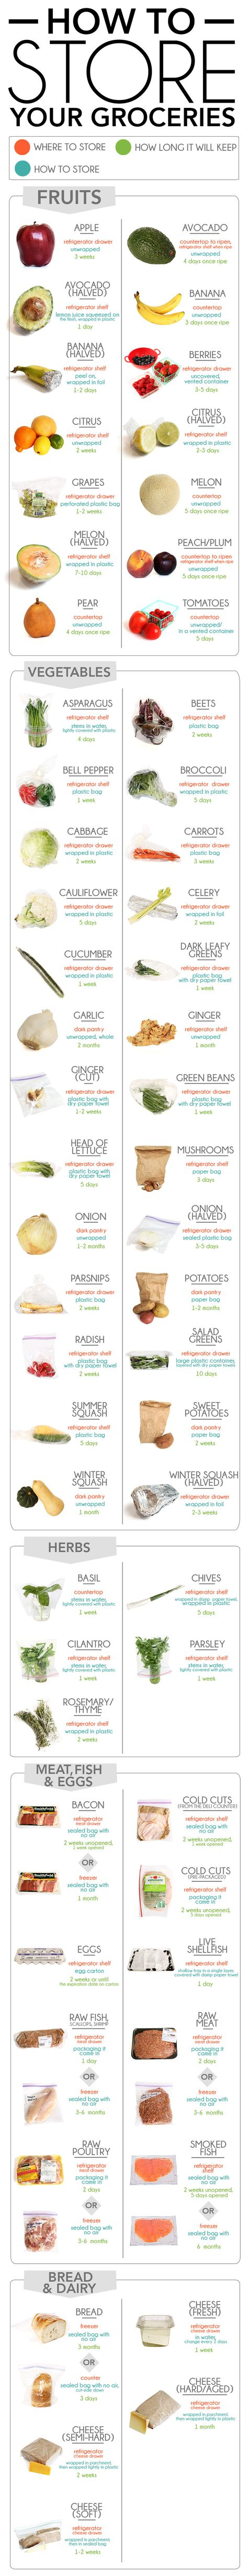 How to store your groceries guide - so handy!